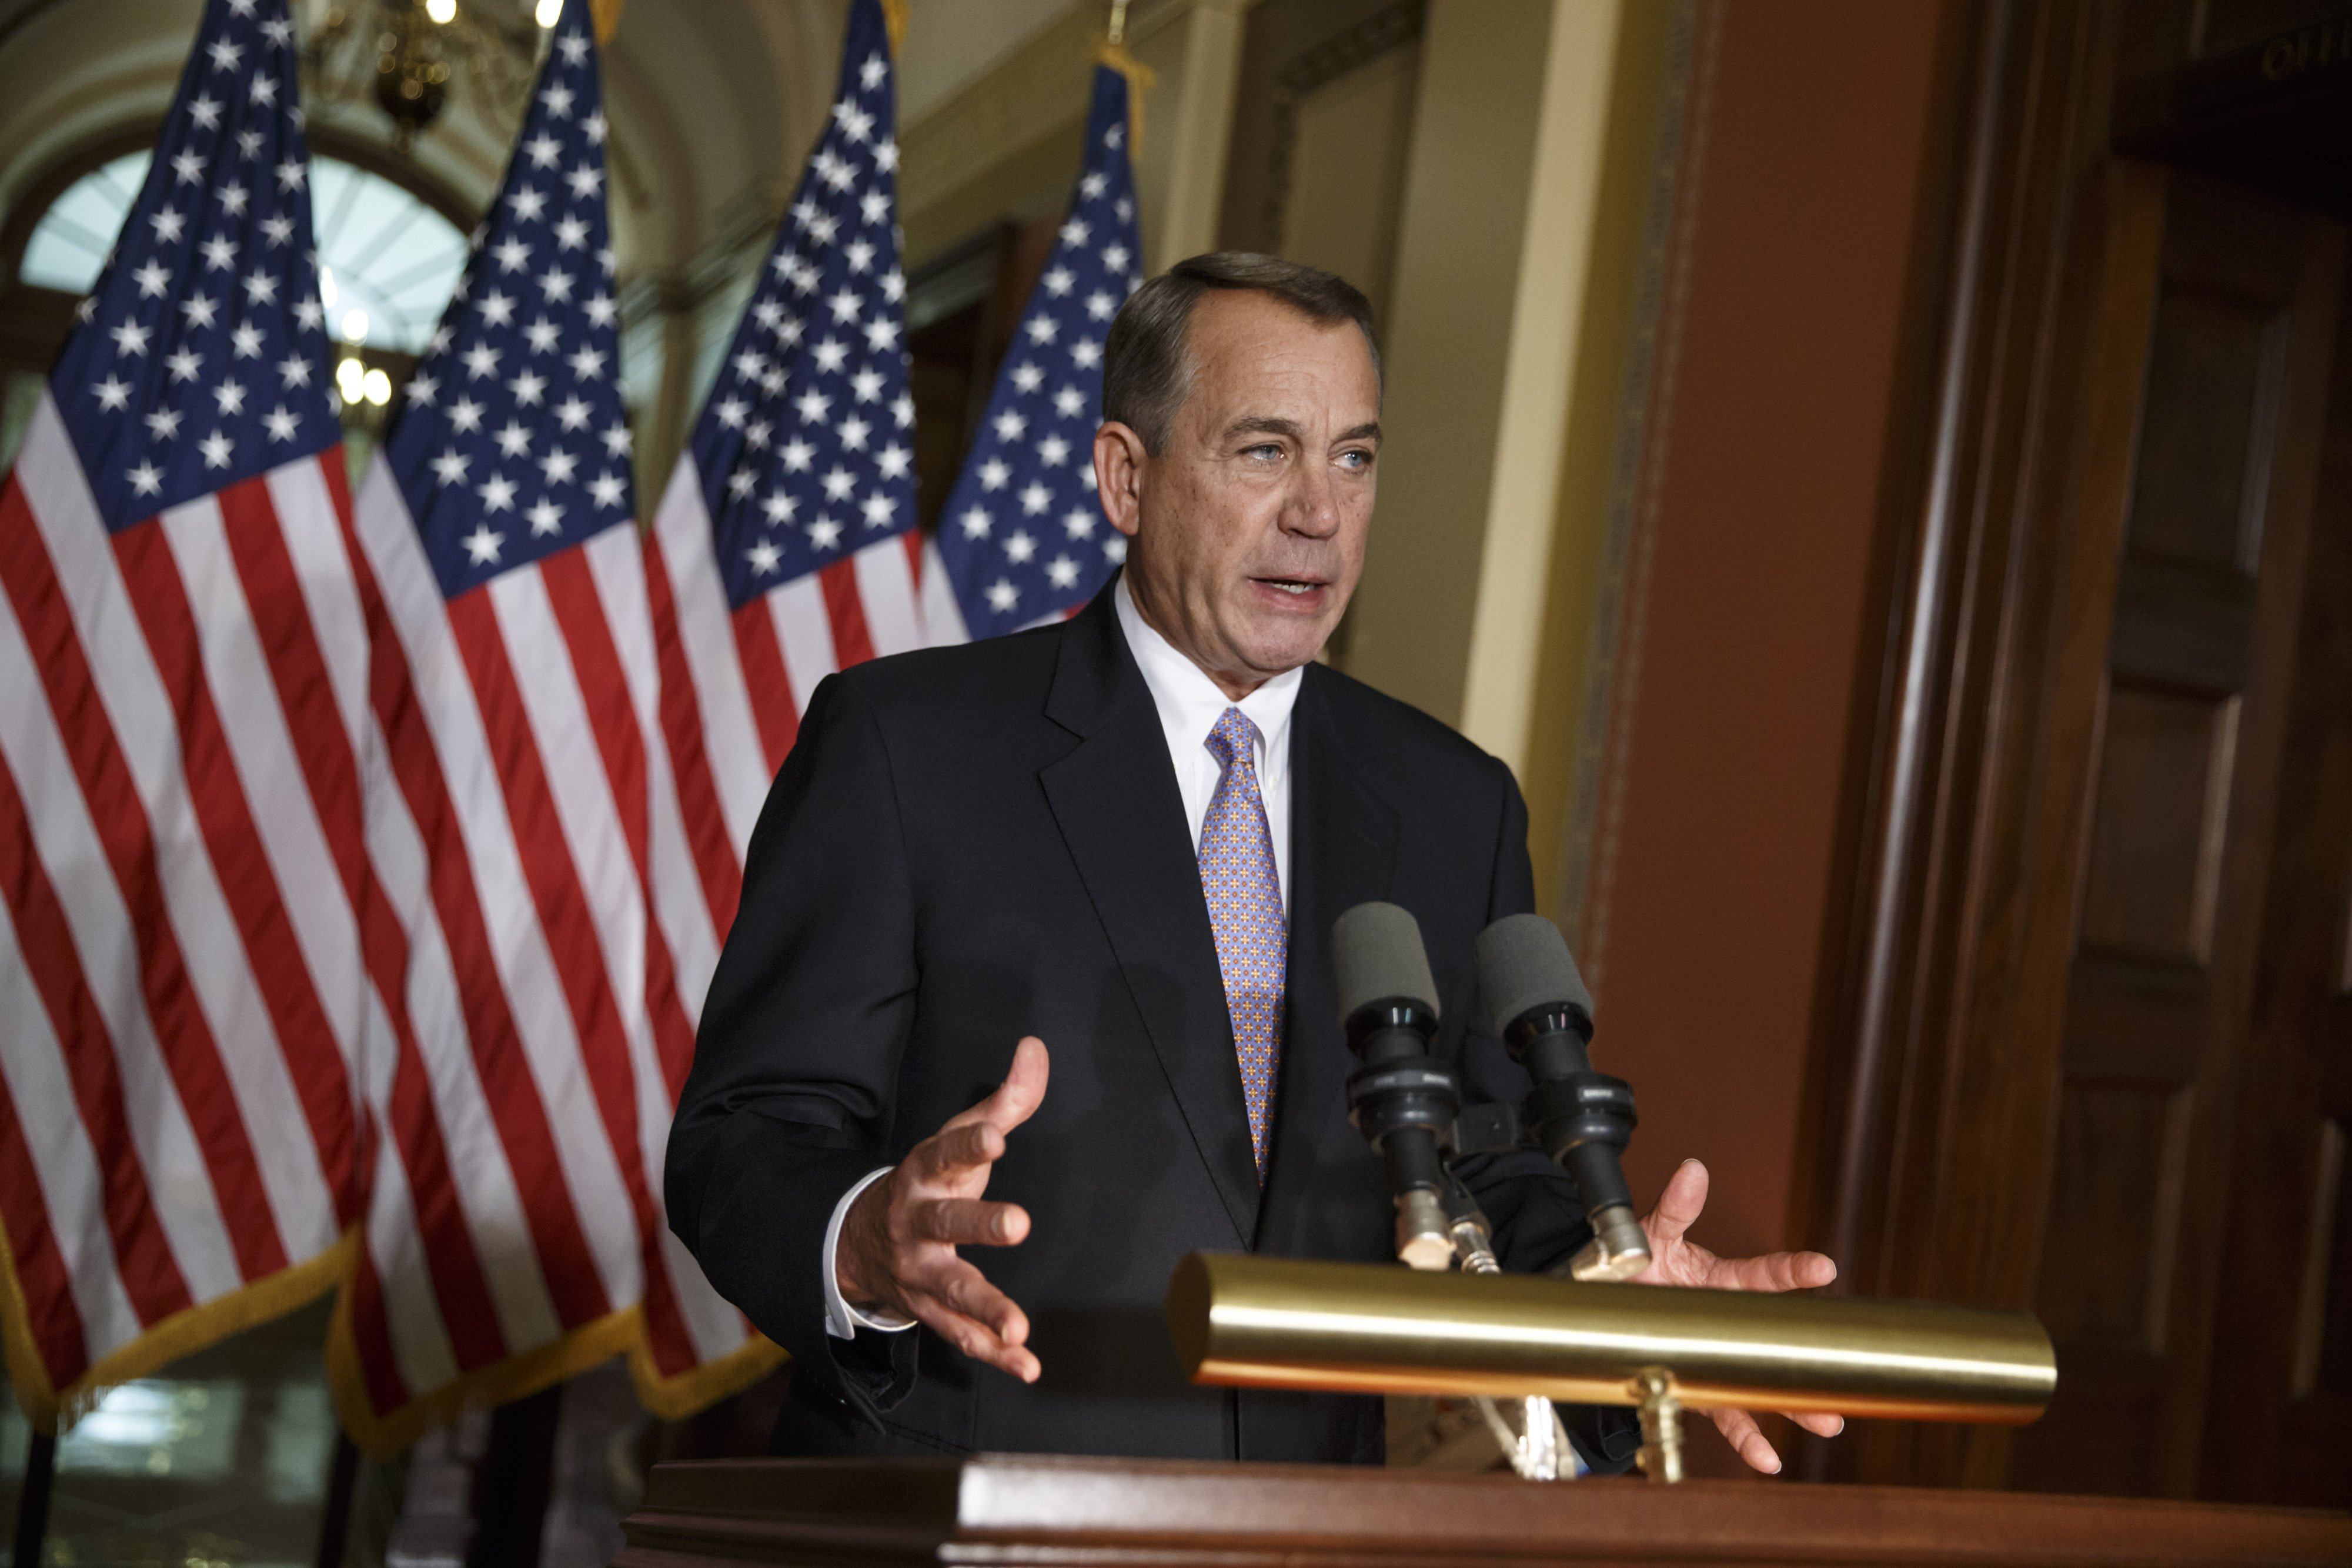 House Speaker John Boehner of Ohio responds to President Barack Obama's intention to spare millions of illegal immigrants from being deported, a use of executive powers that is setting up a fight with Republicans in Congress over the limits of presidential powers on Nov. 21, 2014 in Washington.